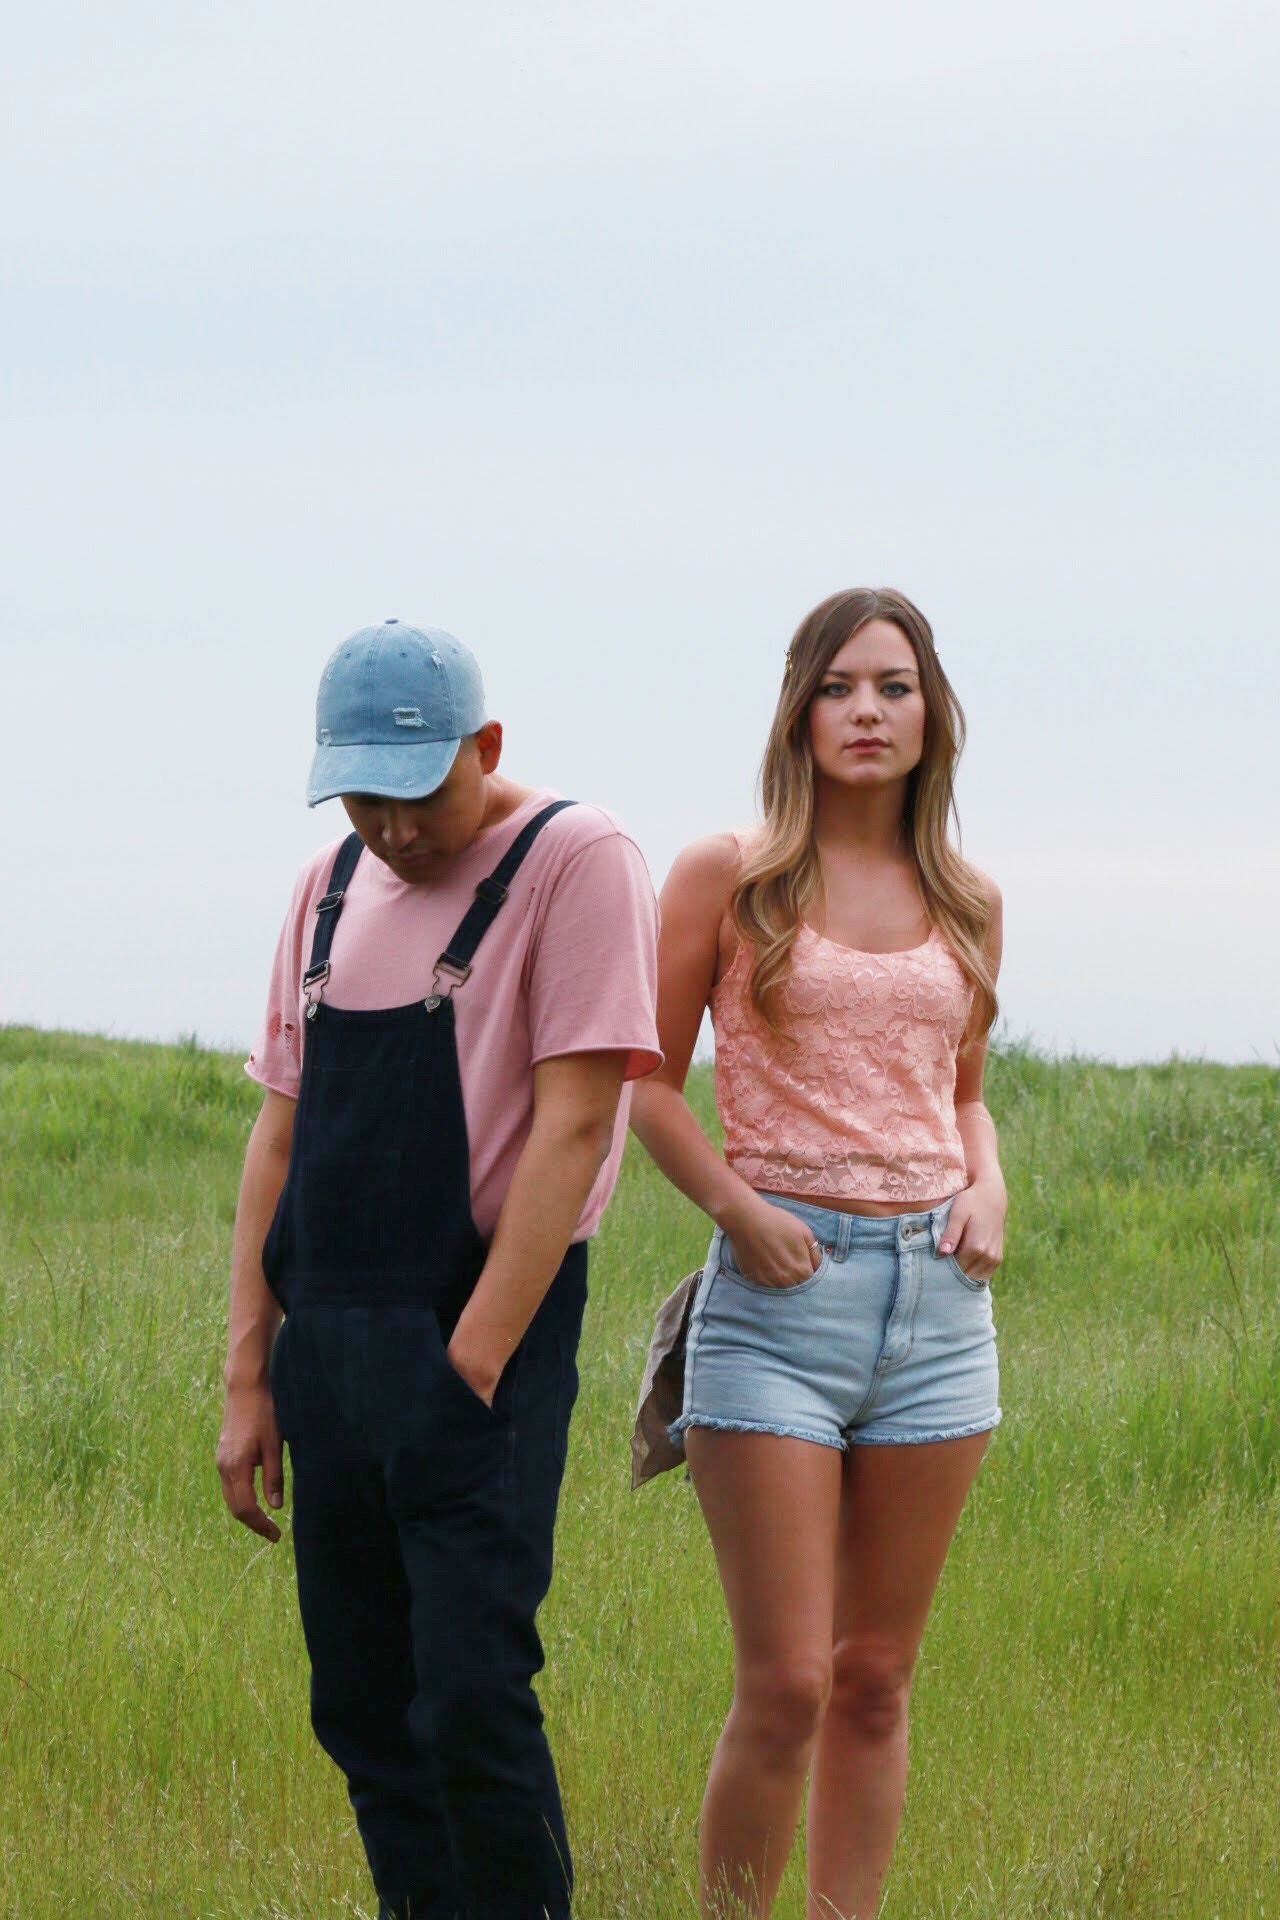 Pops of Denim and Pastel Colors for Festival Fashion